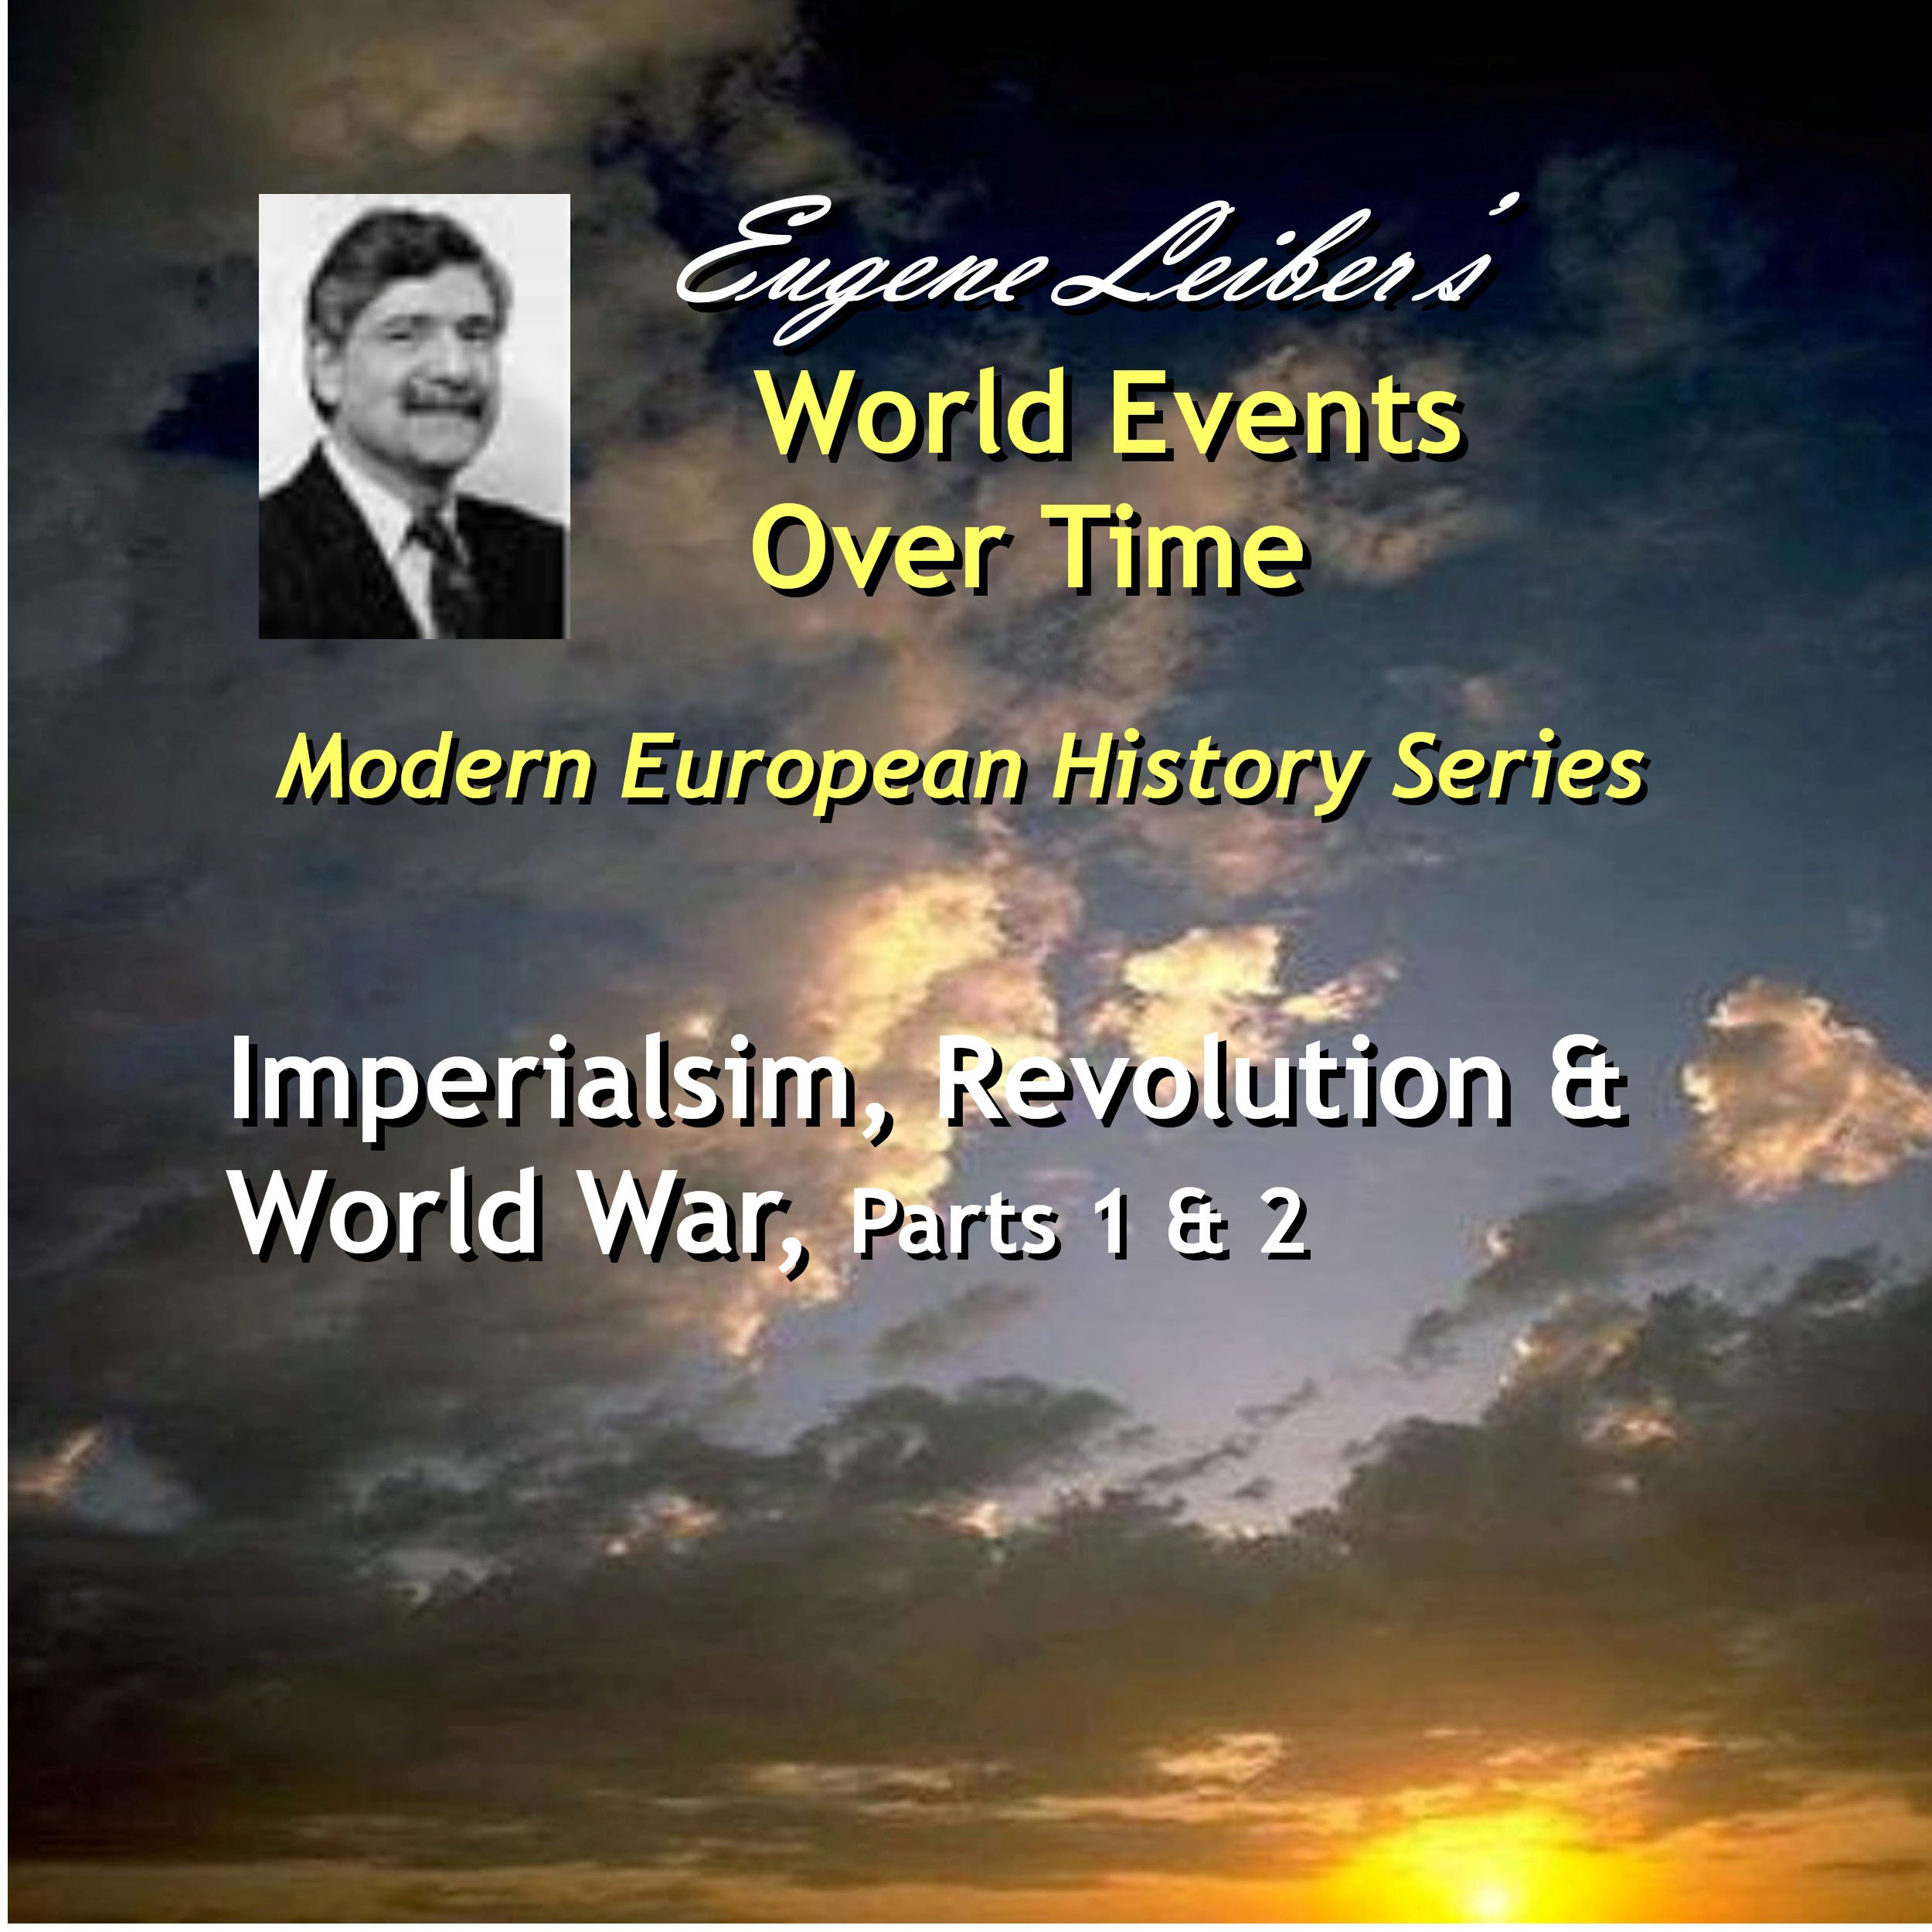 Modern European History Series: Imperialism, Revolution, & War, Parts 1 & 2; World Events Over Time Collection PDF